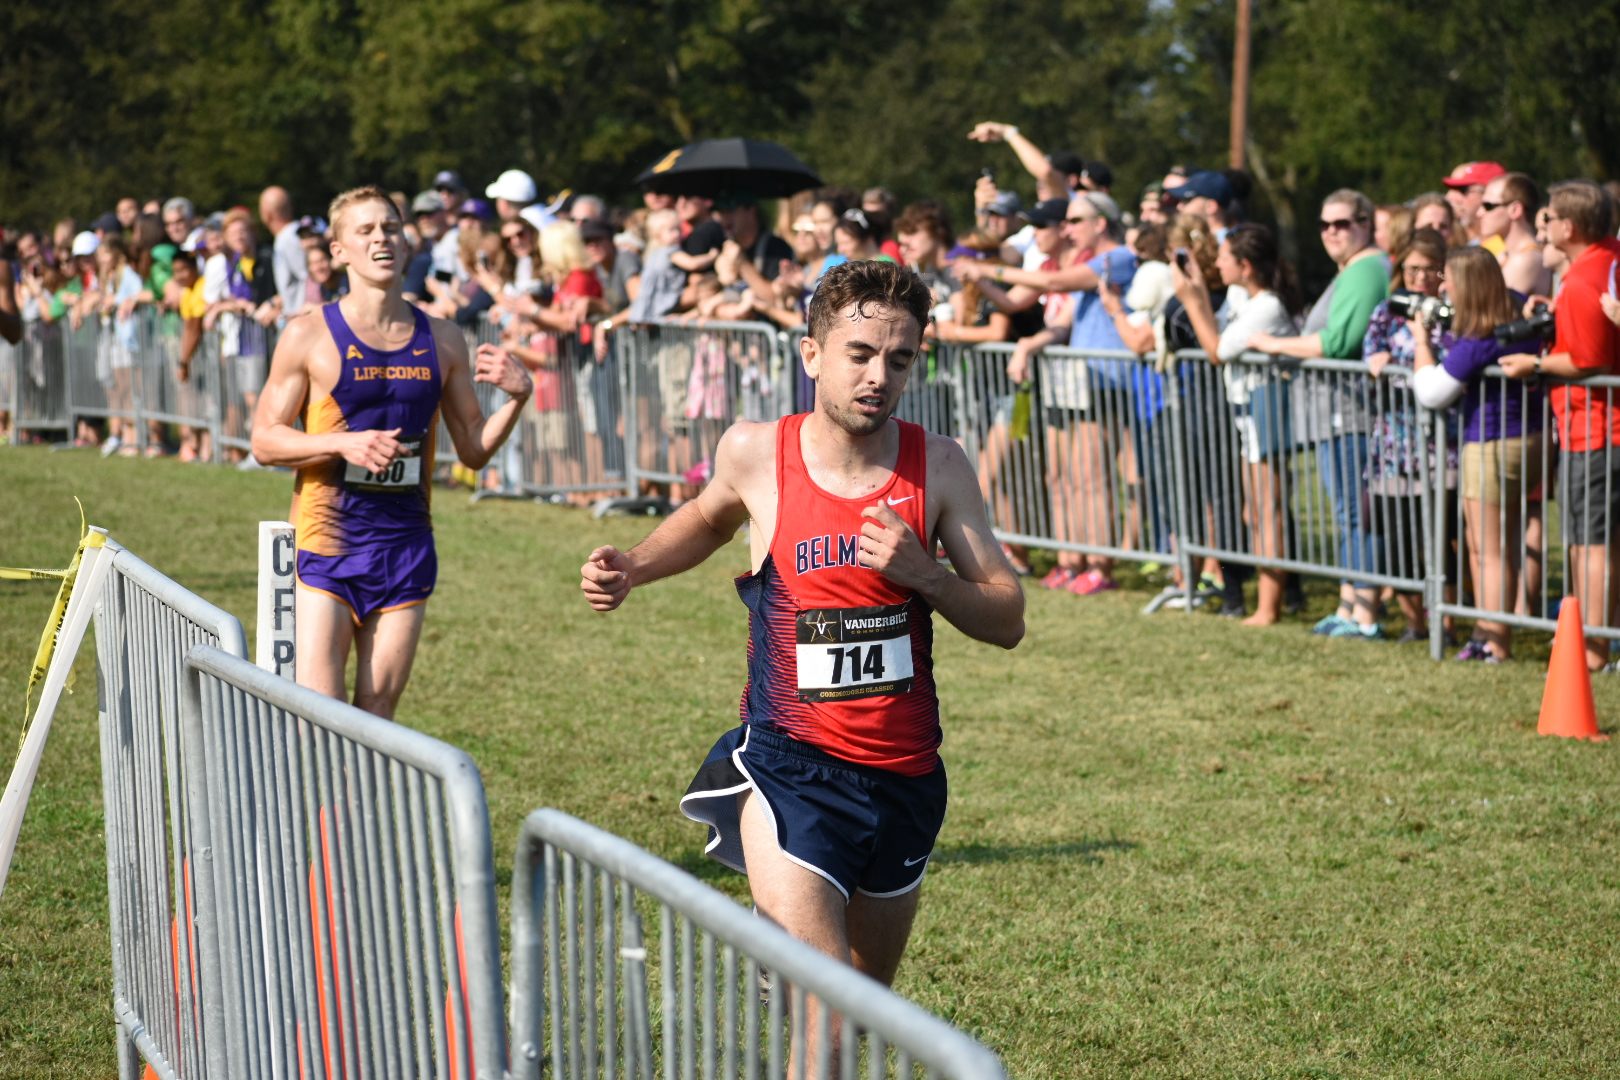 Belmont's Matt Edwards stretches for the finish line at Vanderbilt's Commodore Classic cross country meet in Nashville on Sept. 16, 2017.